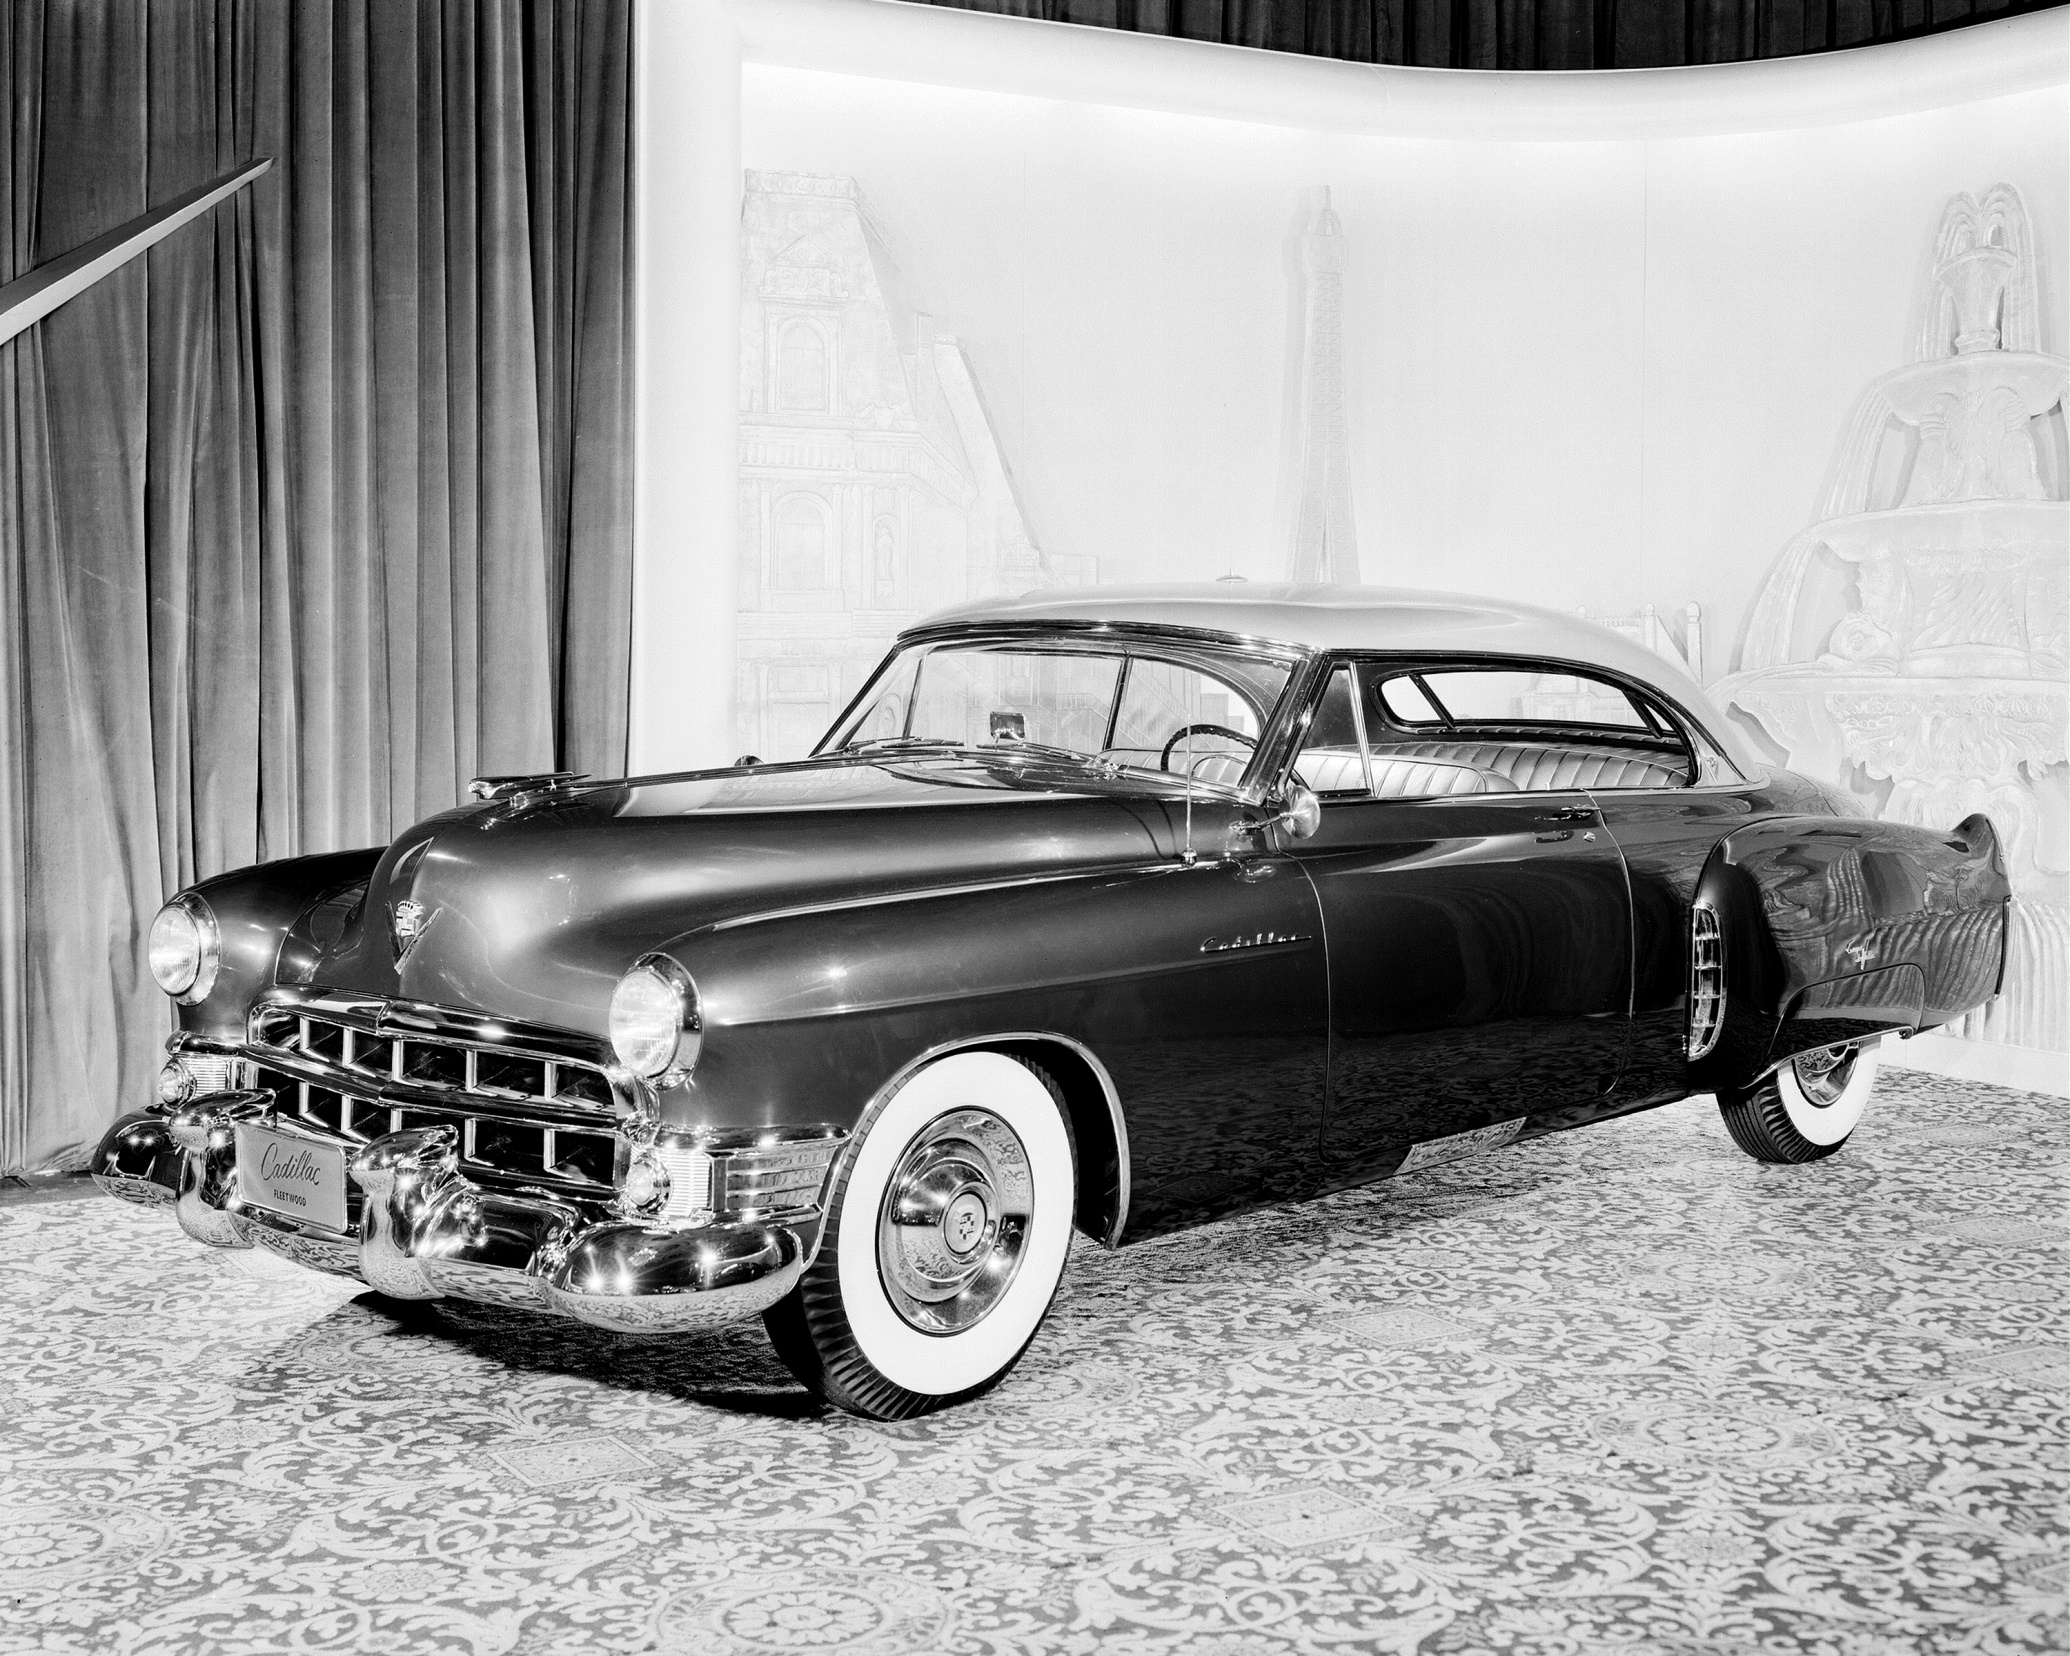 Cadillac Coupe De Ville Prototype First Public Showing In